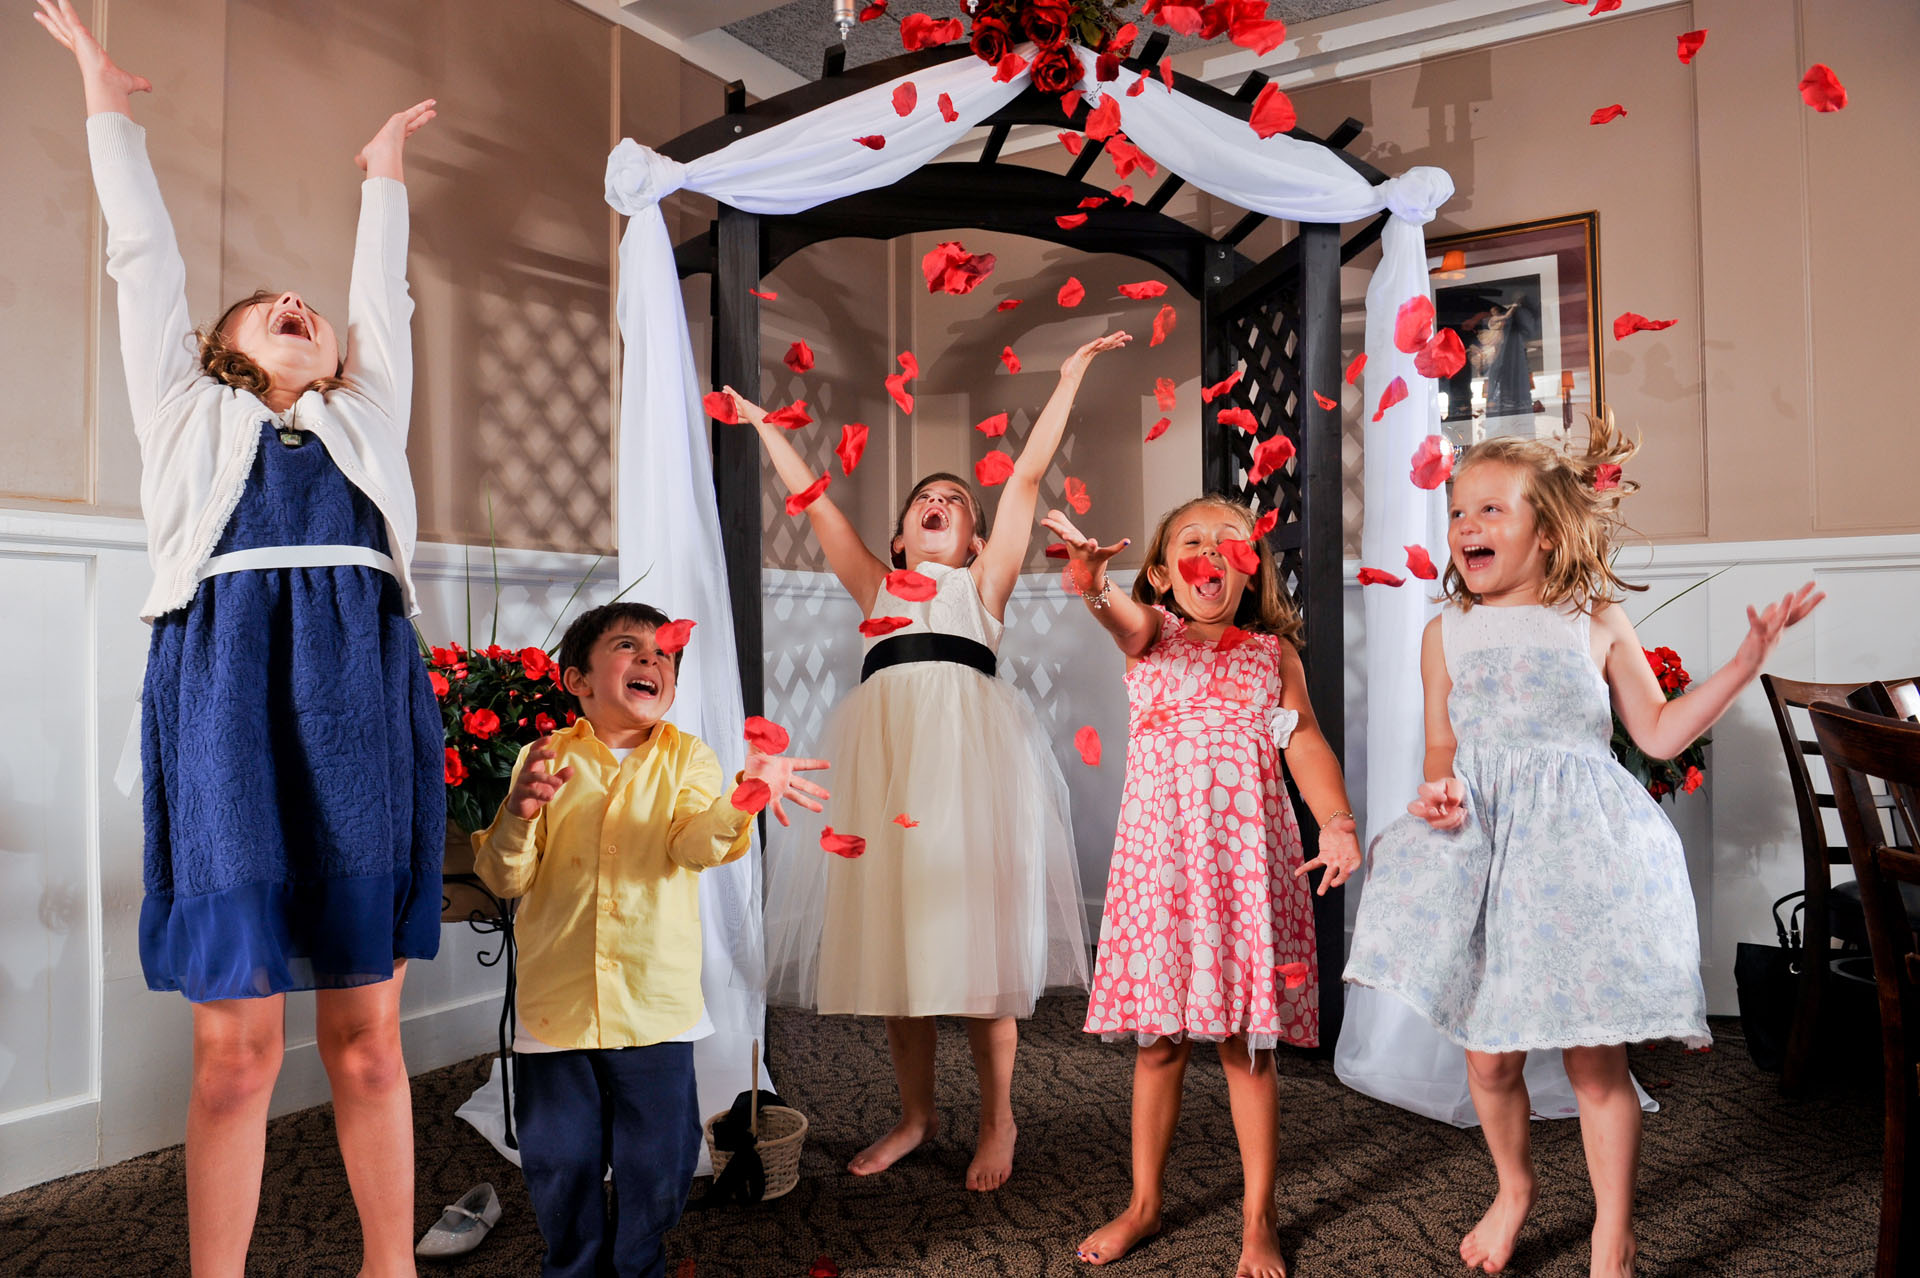 Michigan same sex wedding wedding photographer's photo of kids happily flinging rose petals in the air after a wedding ceremony at the Michigan same sex wedding in Livonia, Michigan.